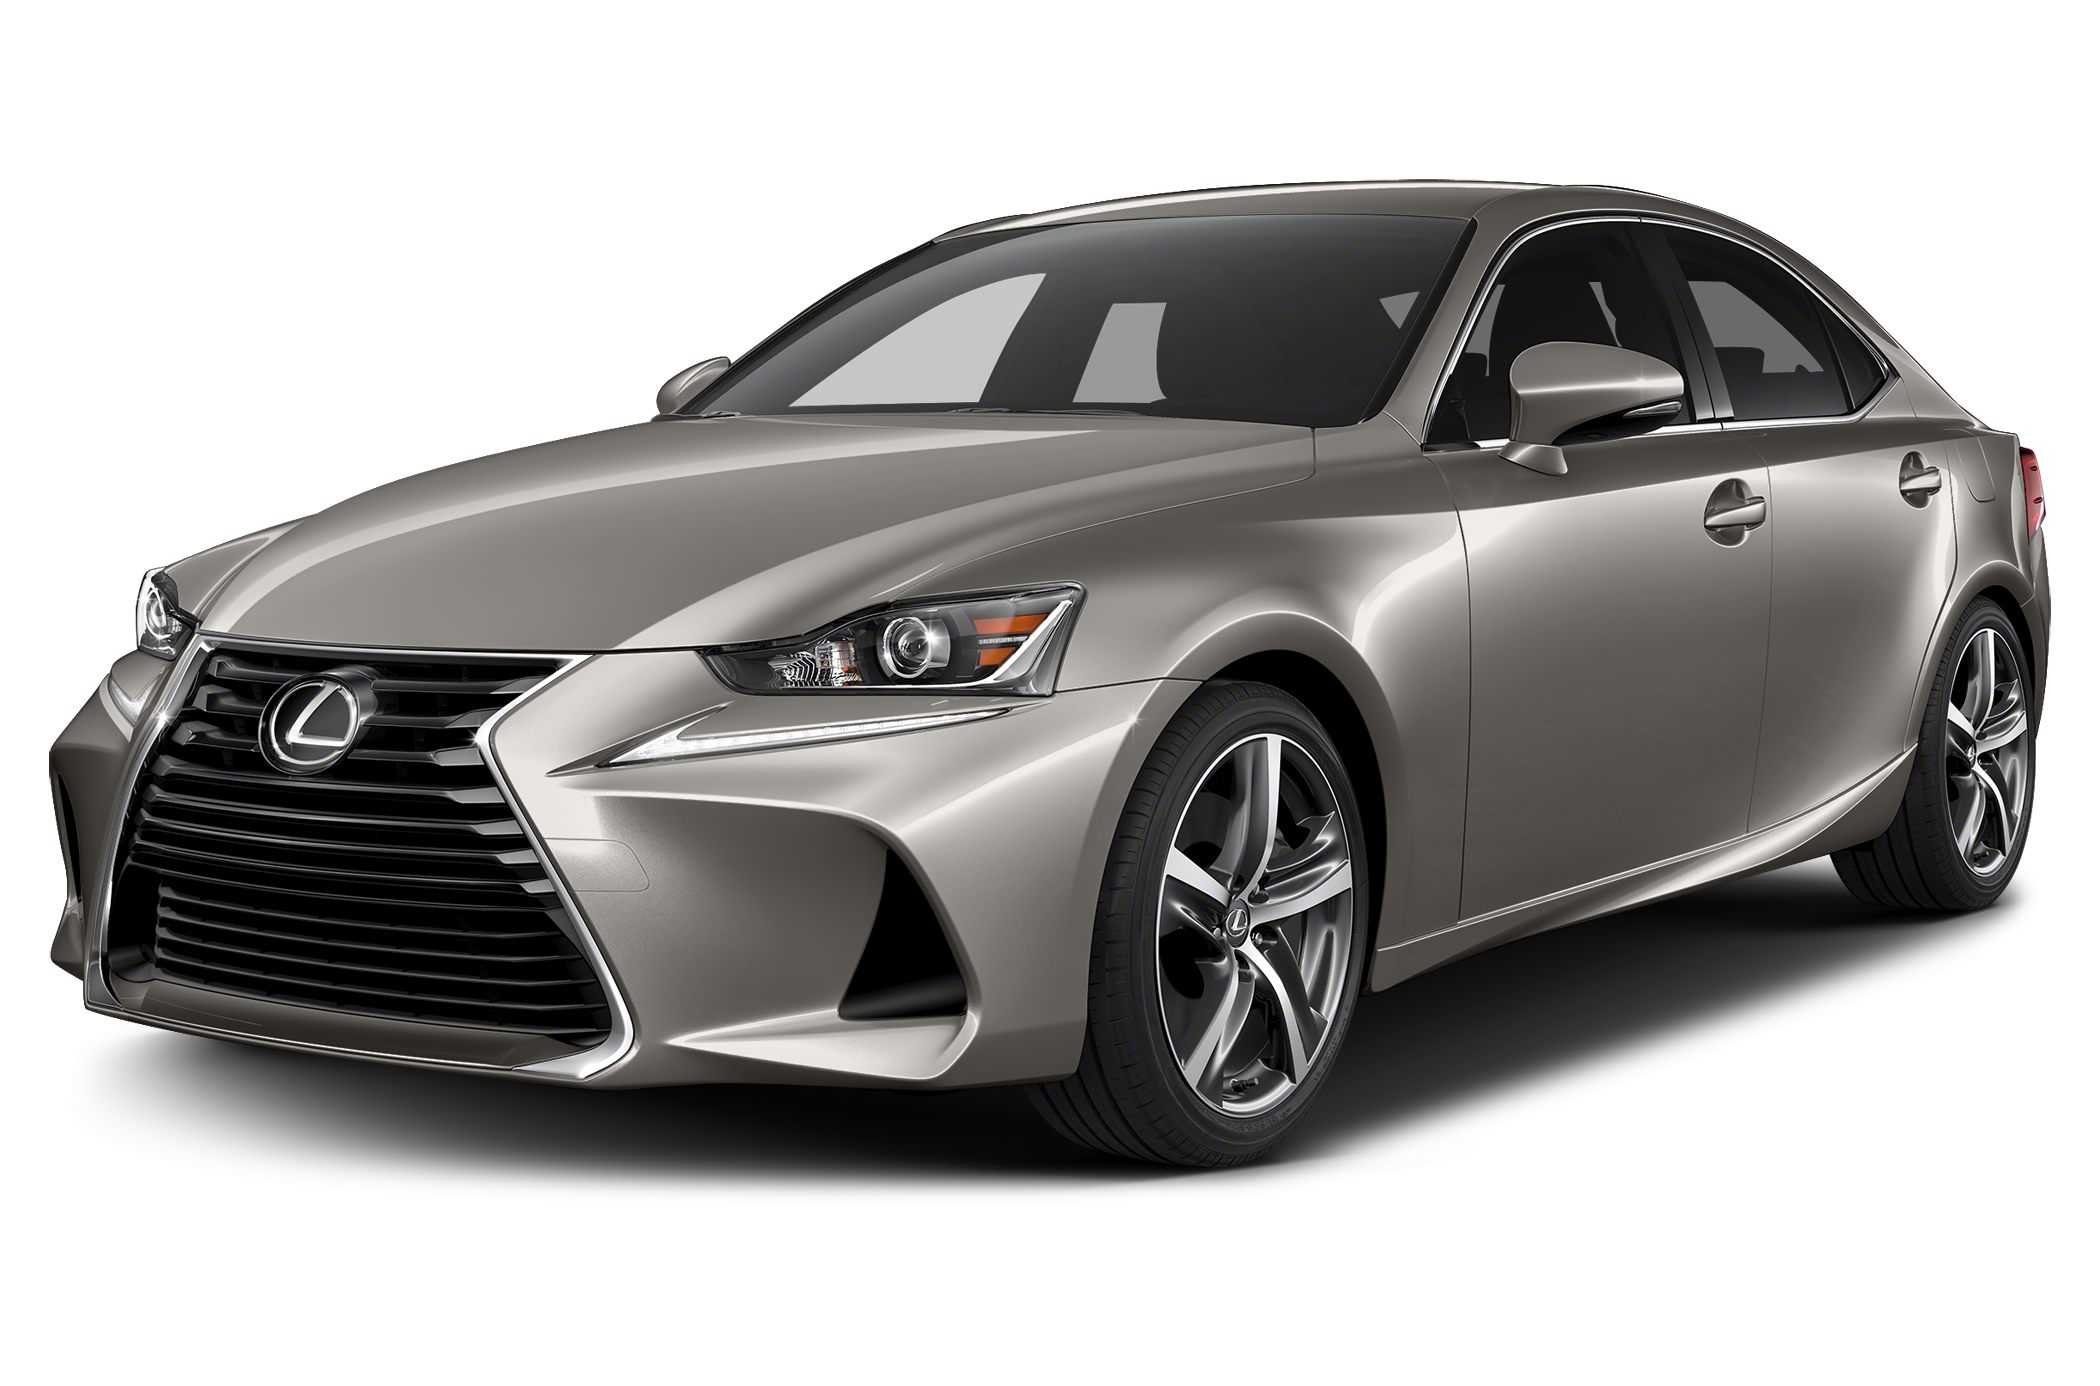 79 Best Price Of 2019 Lexus Images